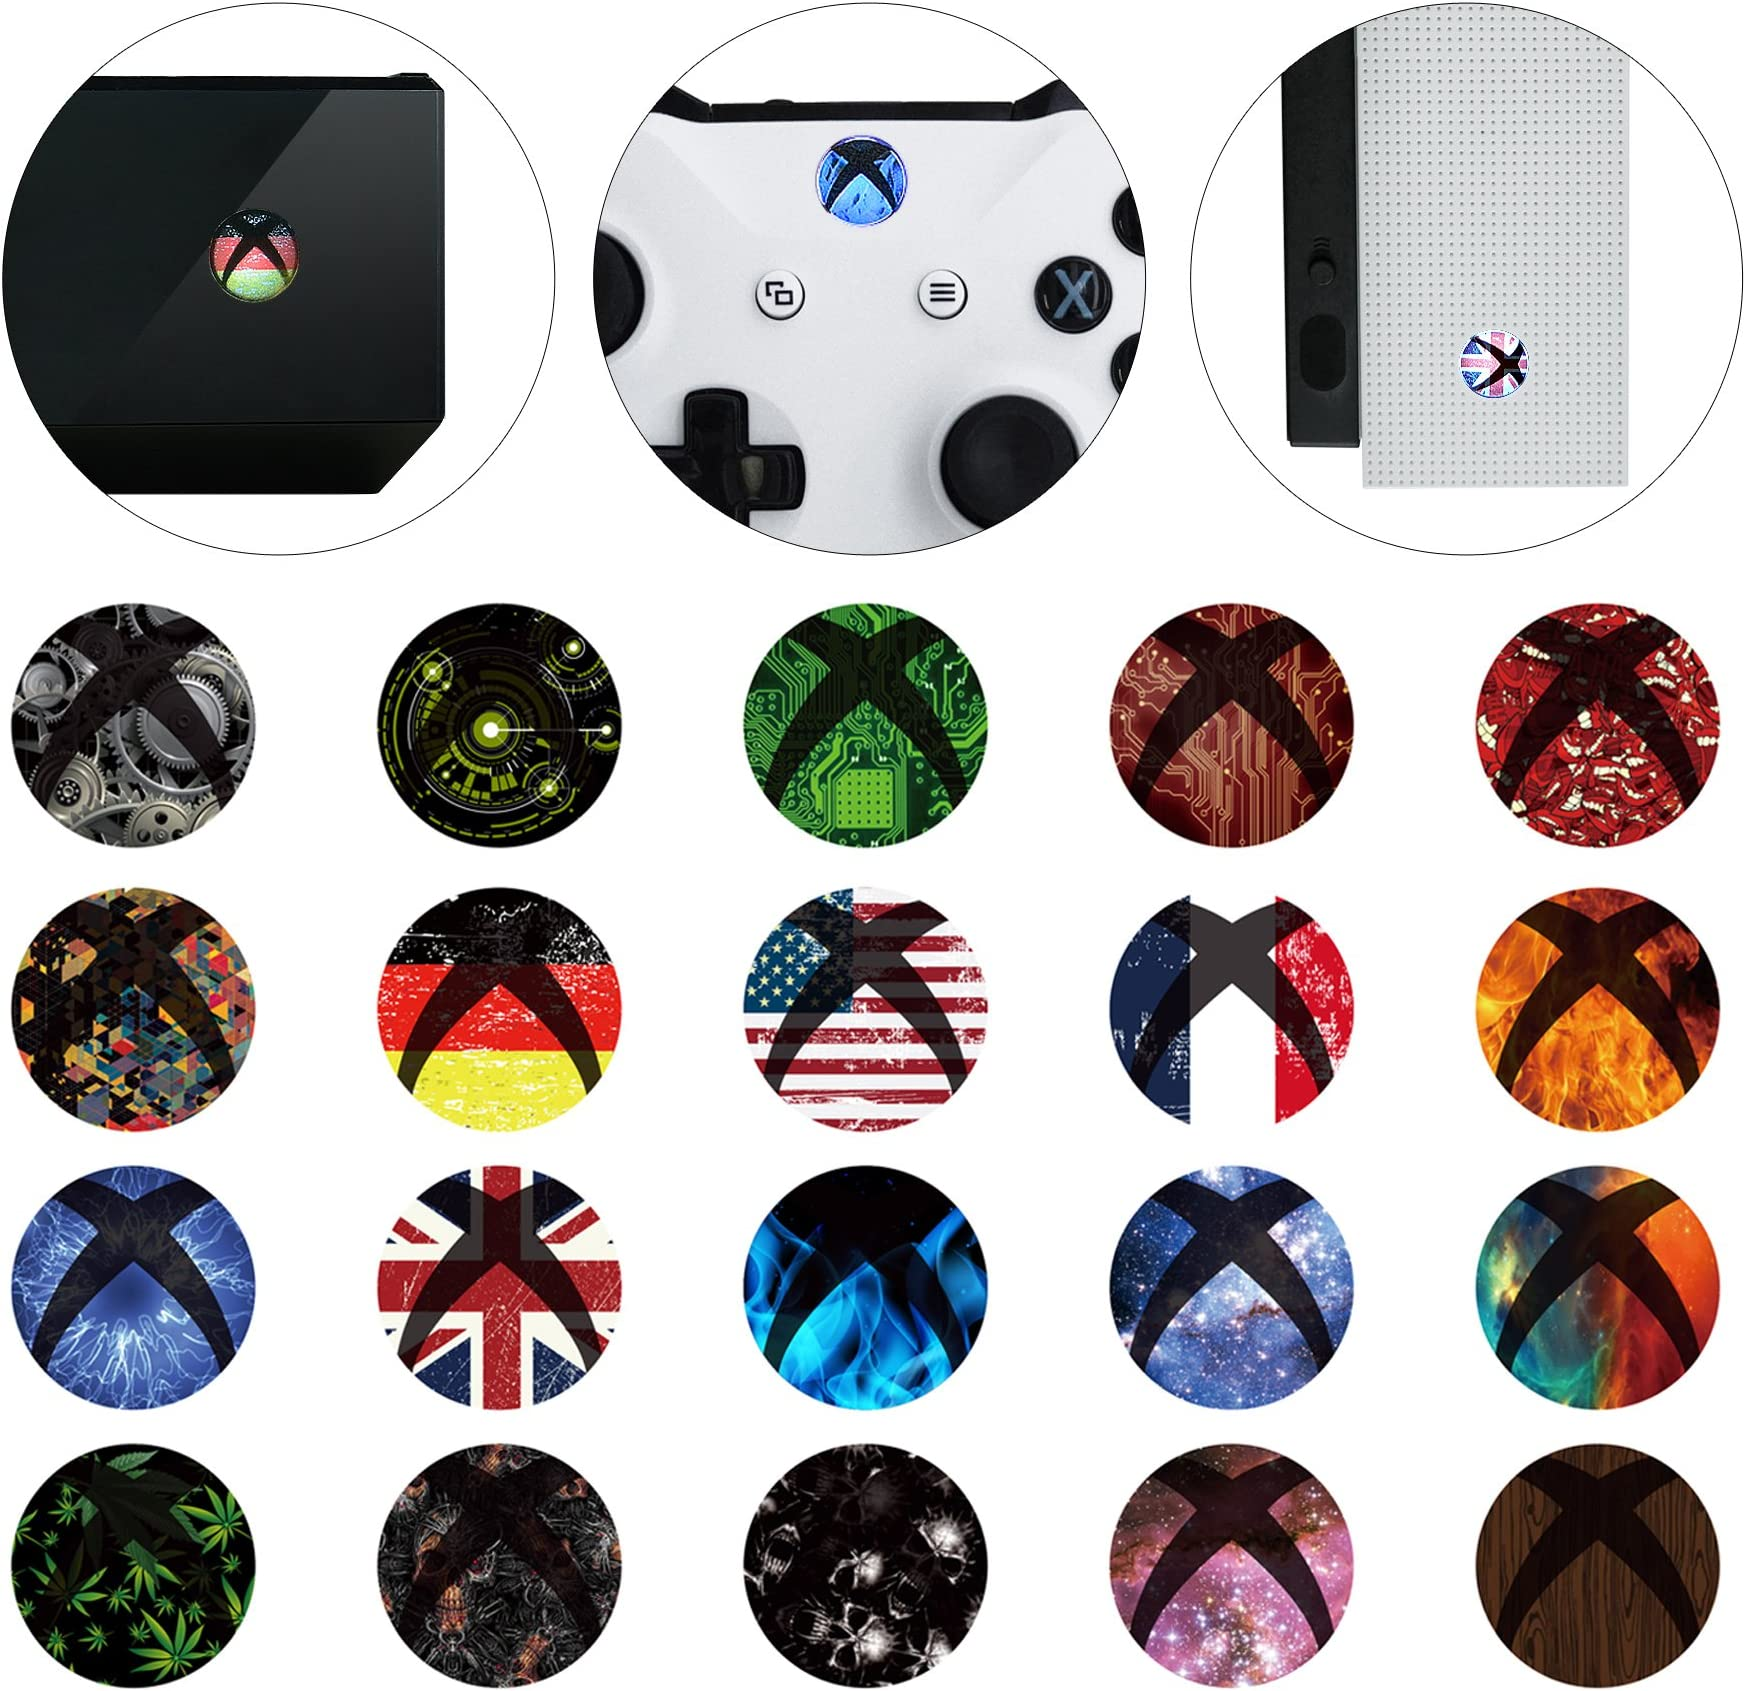 Amazon com: eXtremeRate 60 pcs Custom Home Button Power